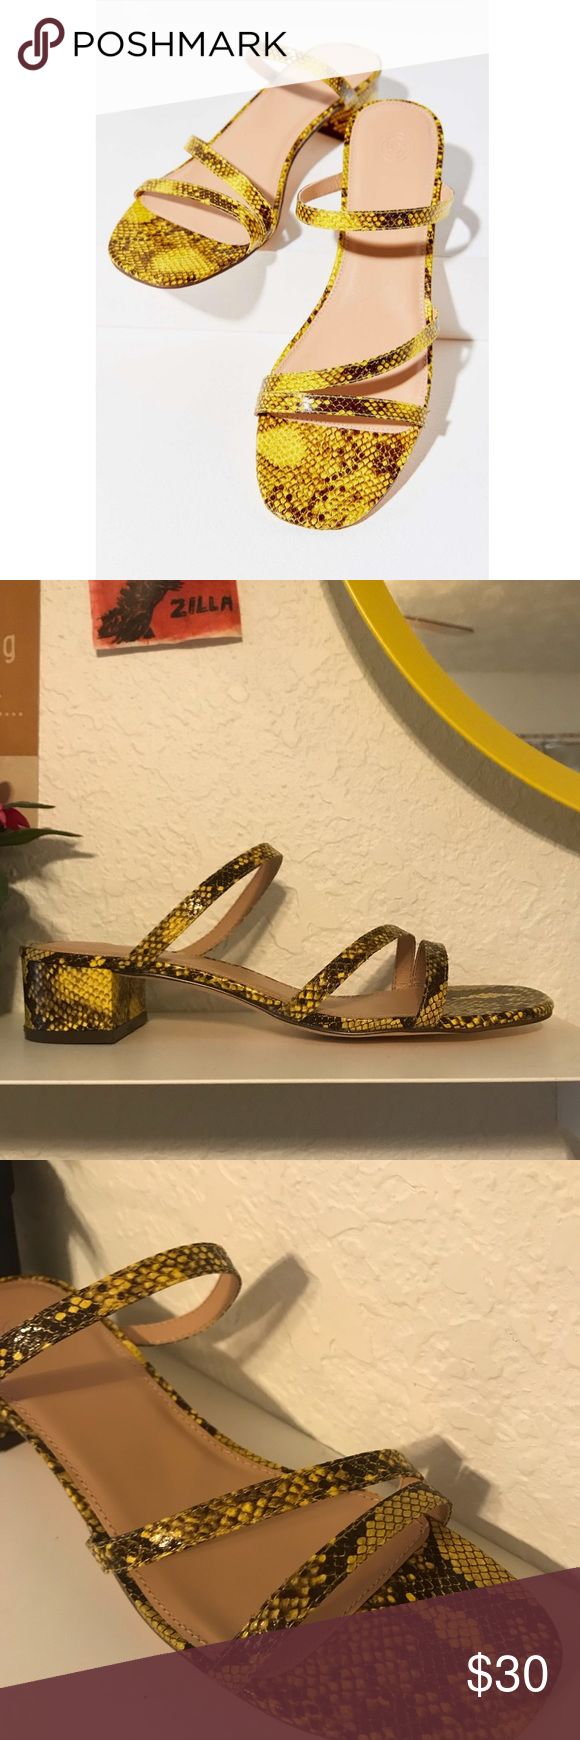 62df7e04a UO Claudia snake print strappy sandal Easy and chic